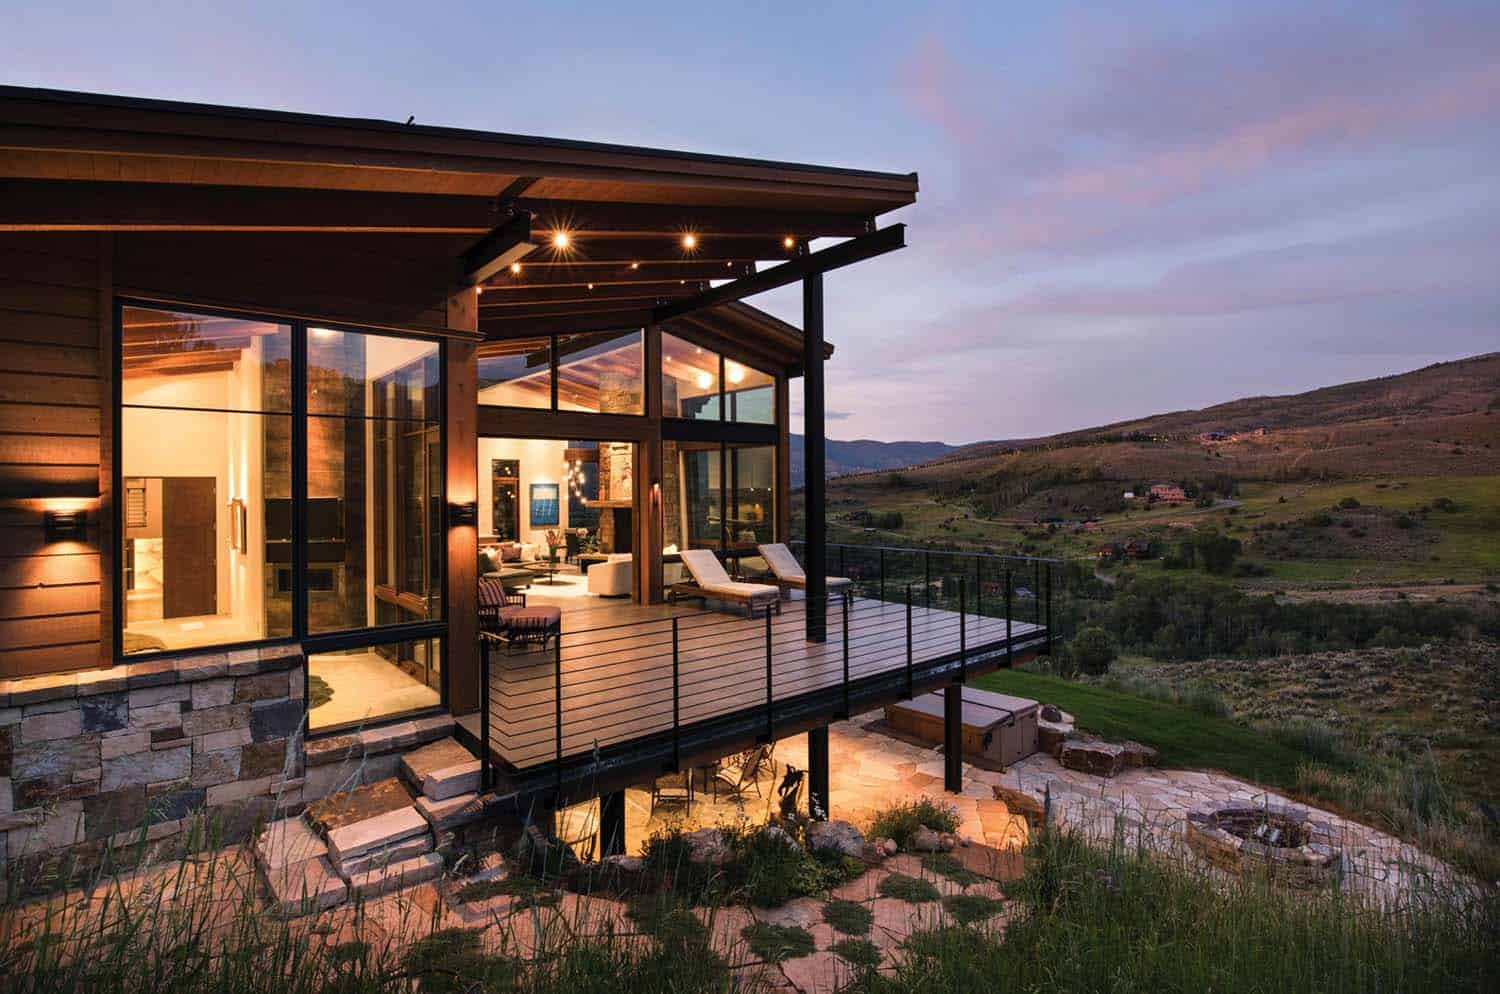 Contemporary Mountain Home Renovation-Berglund Architects-22-1 Kindesign